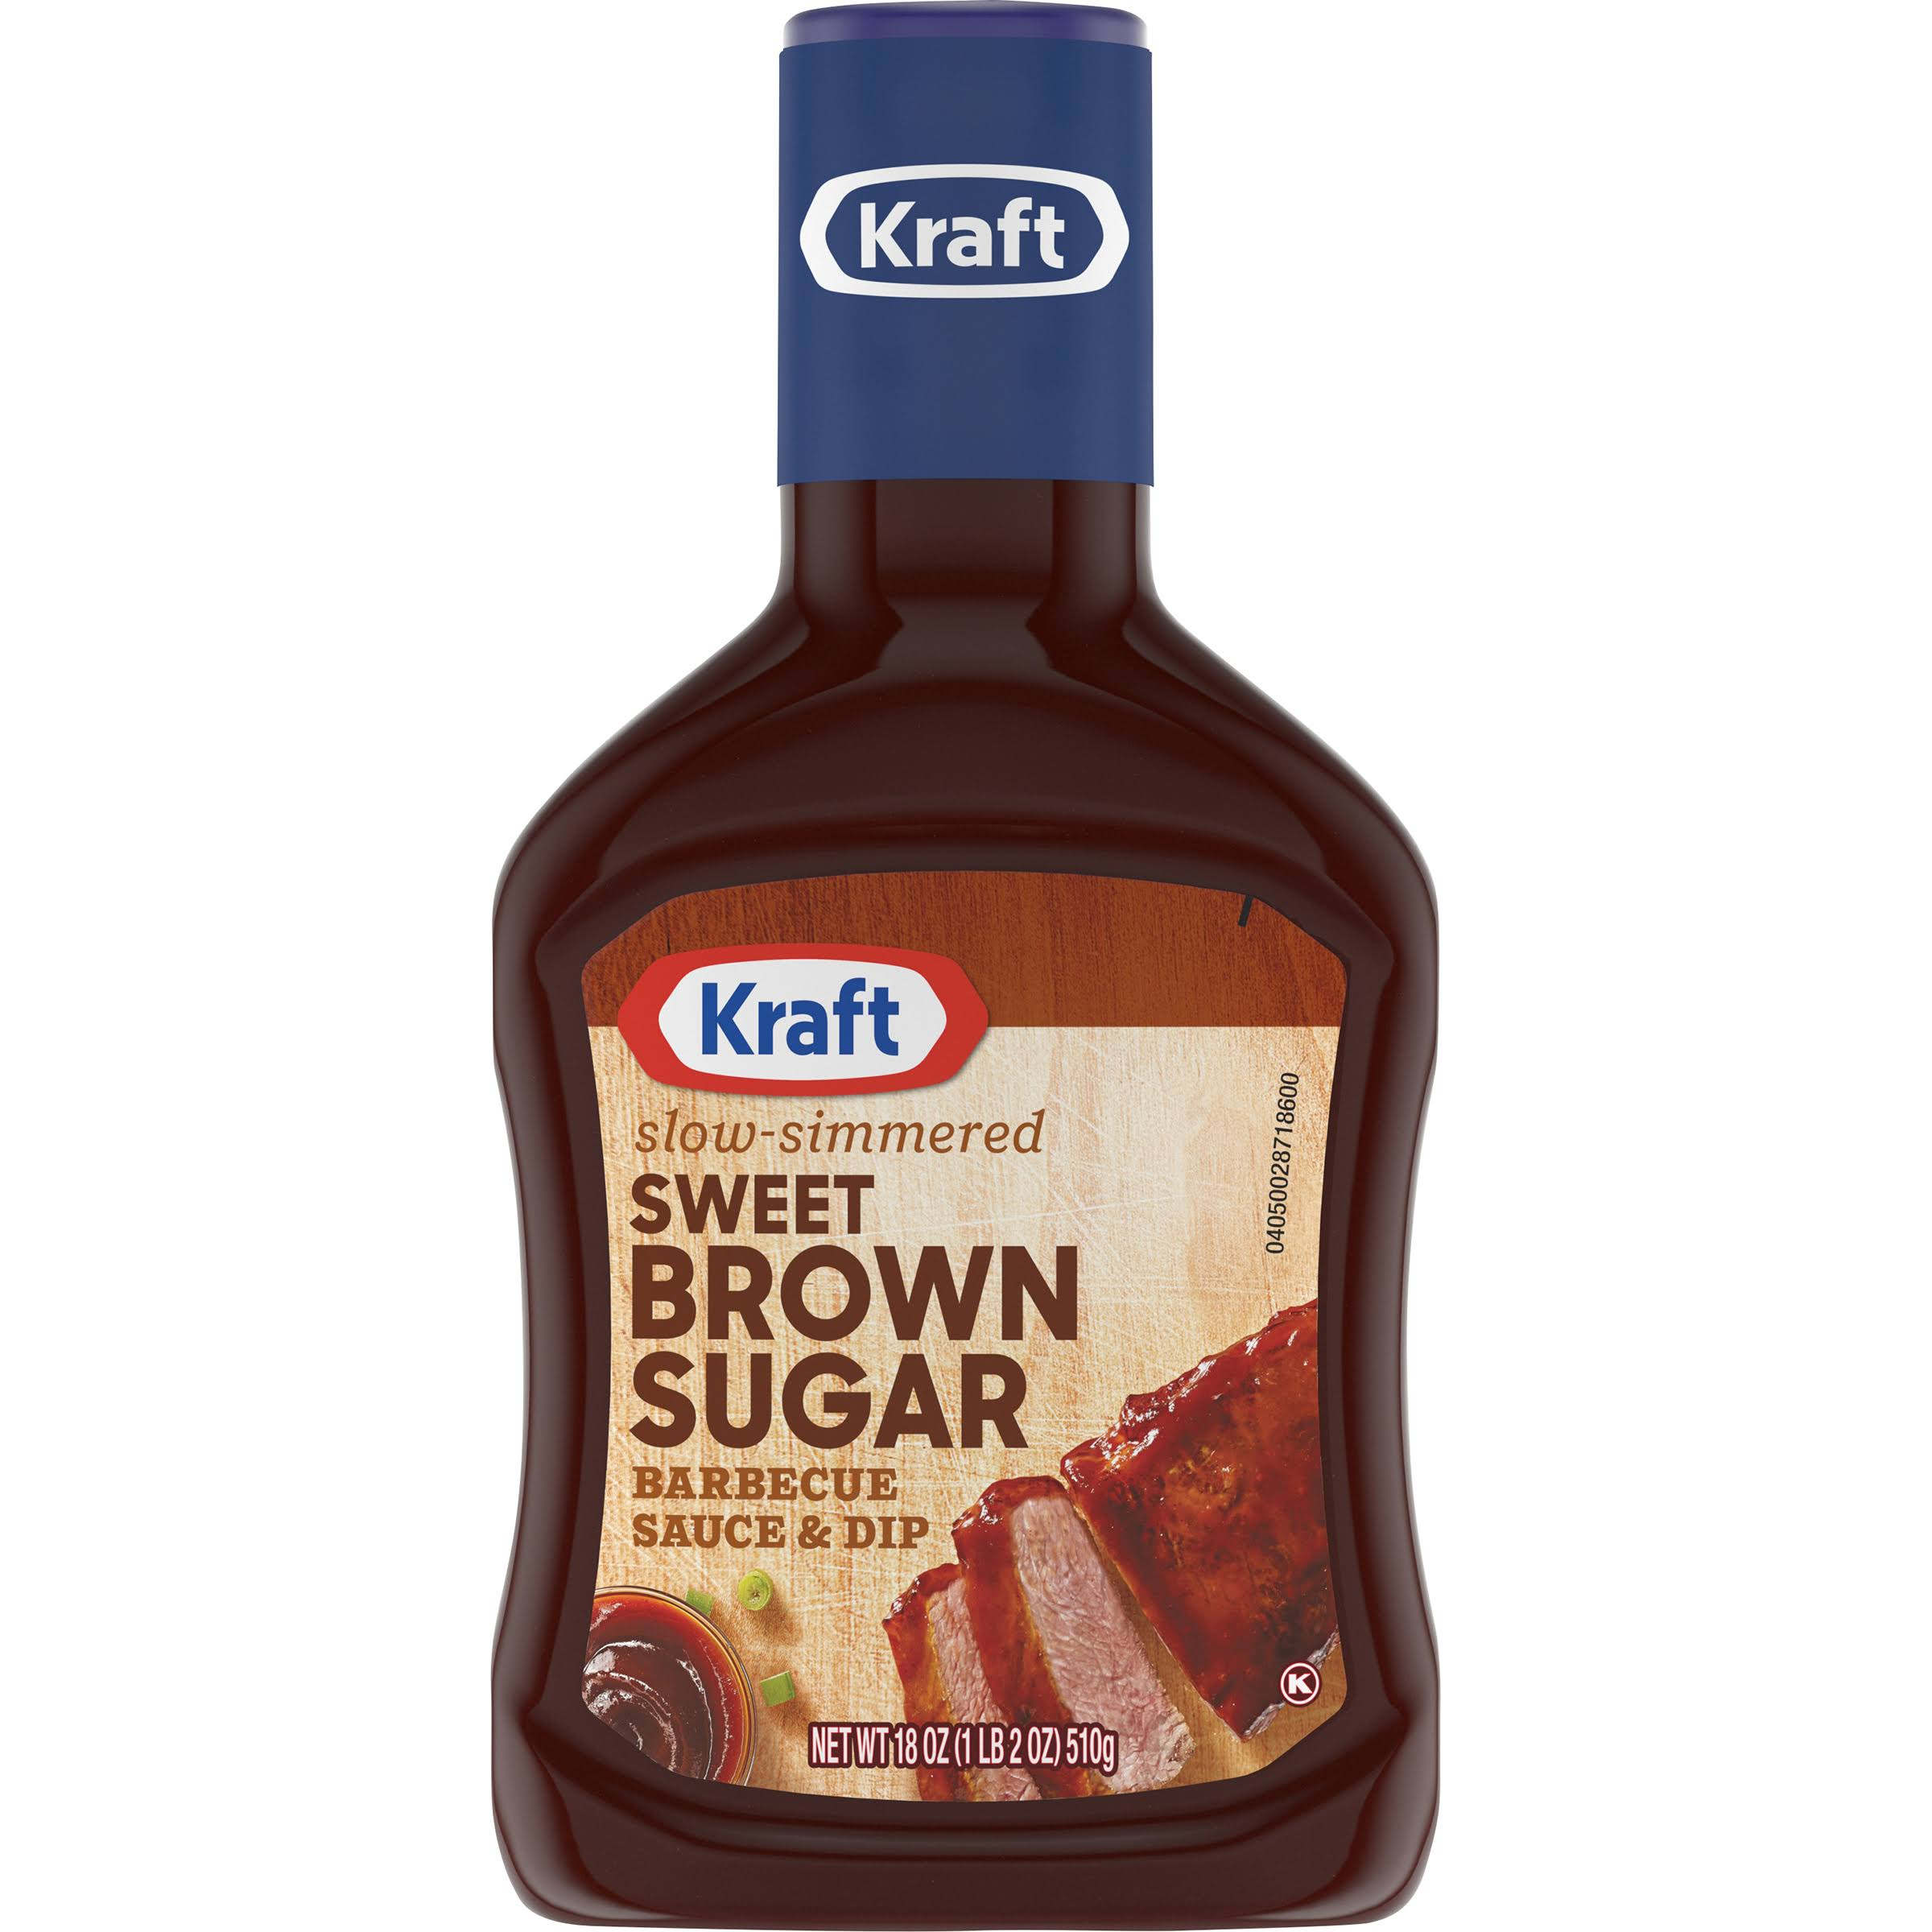 Kraft Sweet Brown Sugar Barbecue Sauce and Dip - 18oz